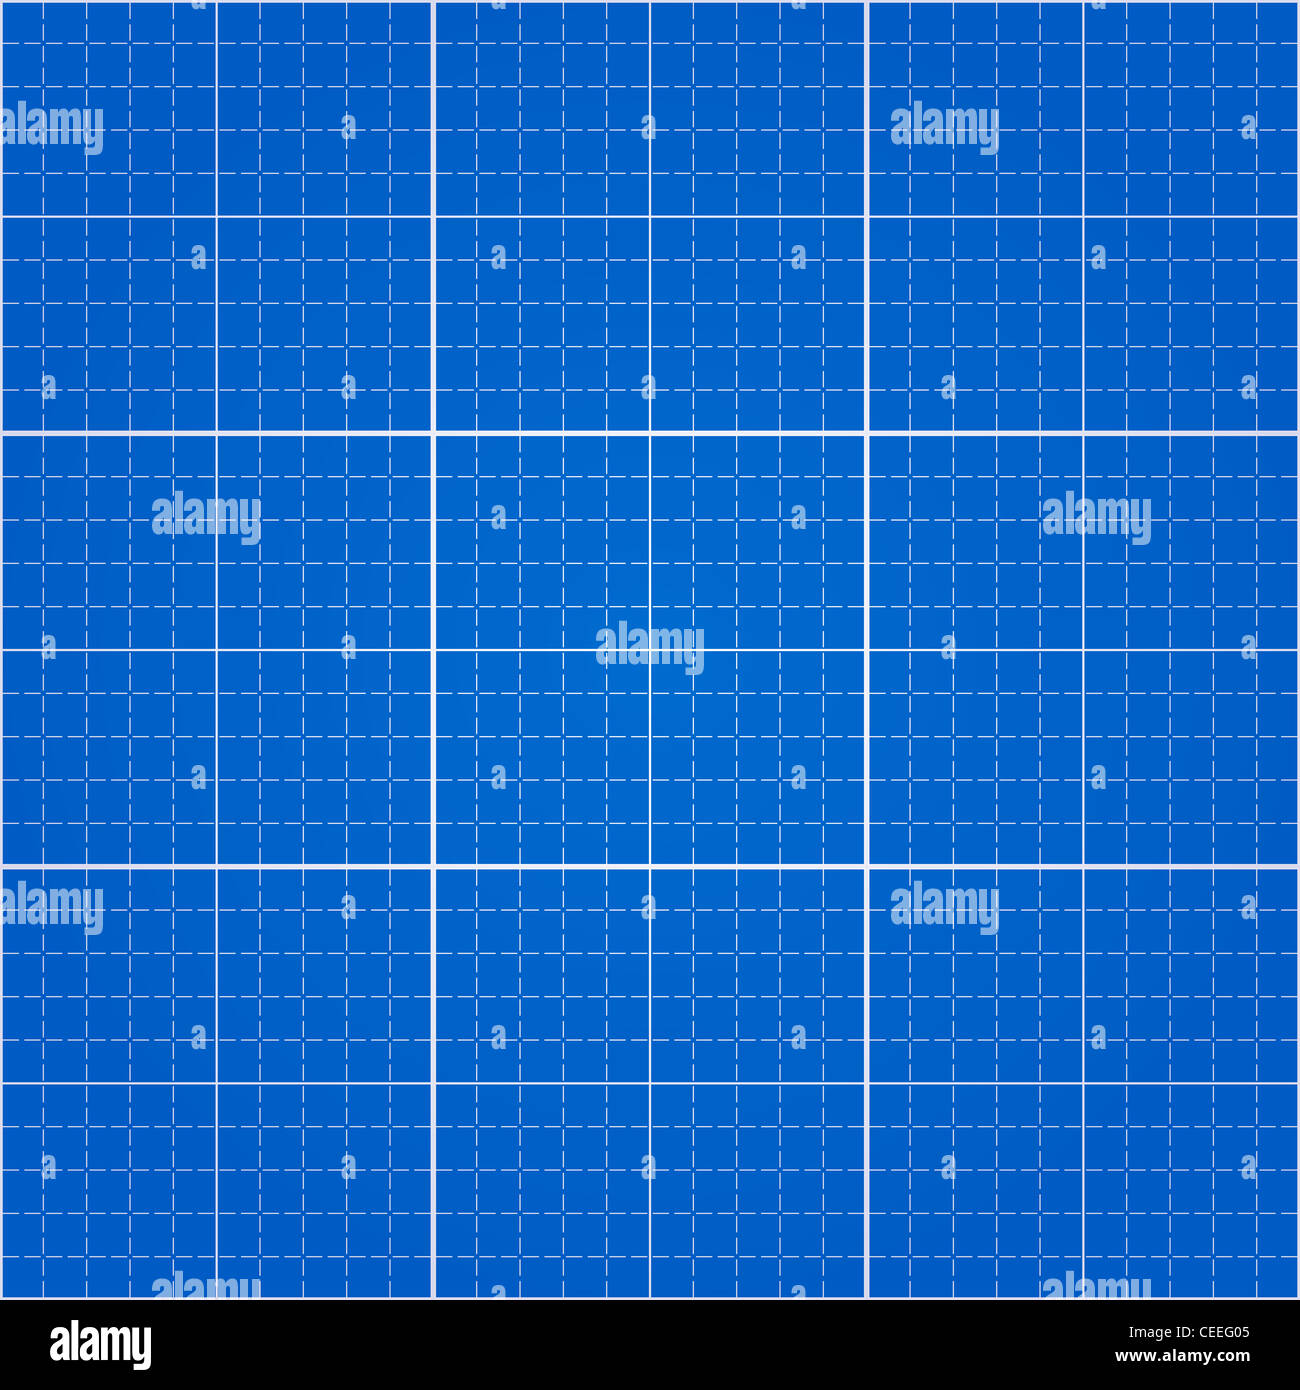 Seamless blueprint background engineering drawing blue paper seamless blueprint background engineering drawing blue paper background with pattern swatch in eps file malvernweather Images